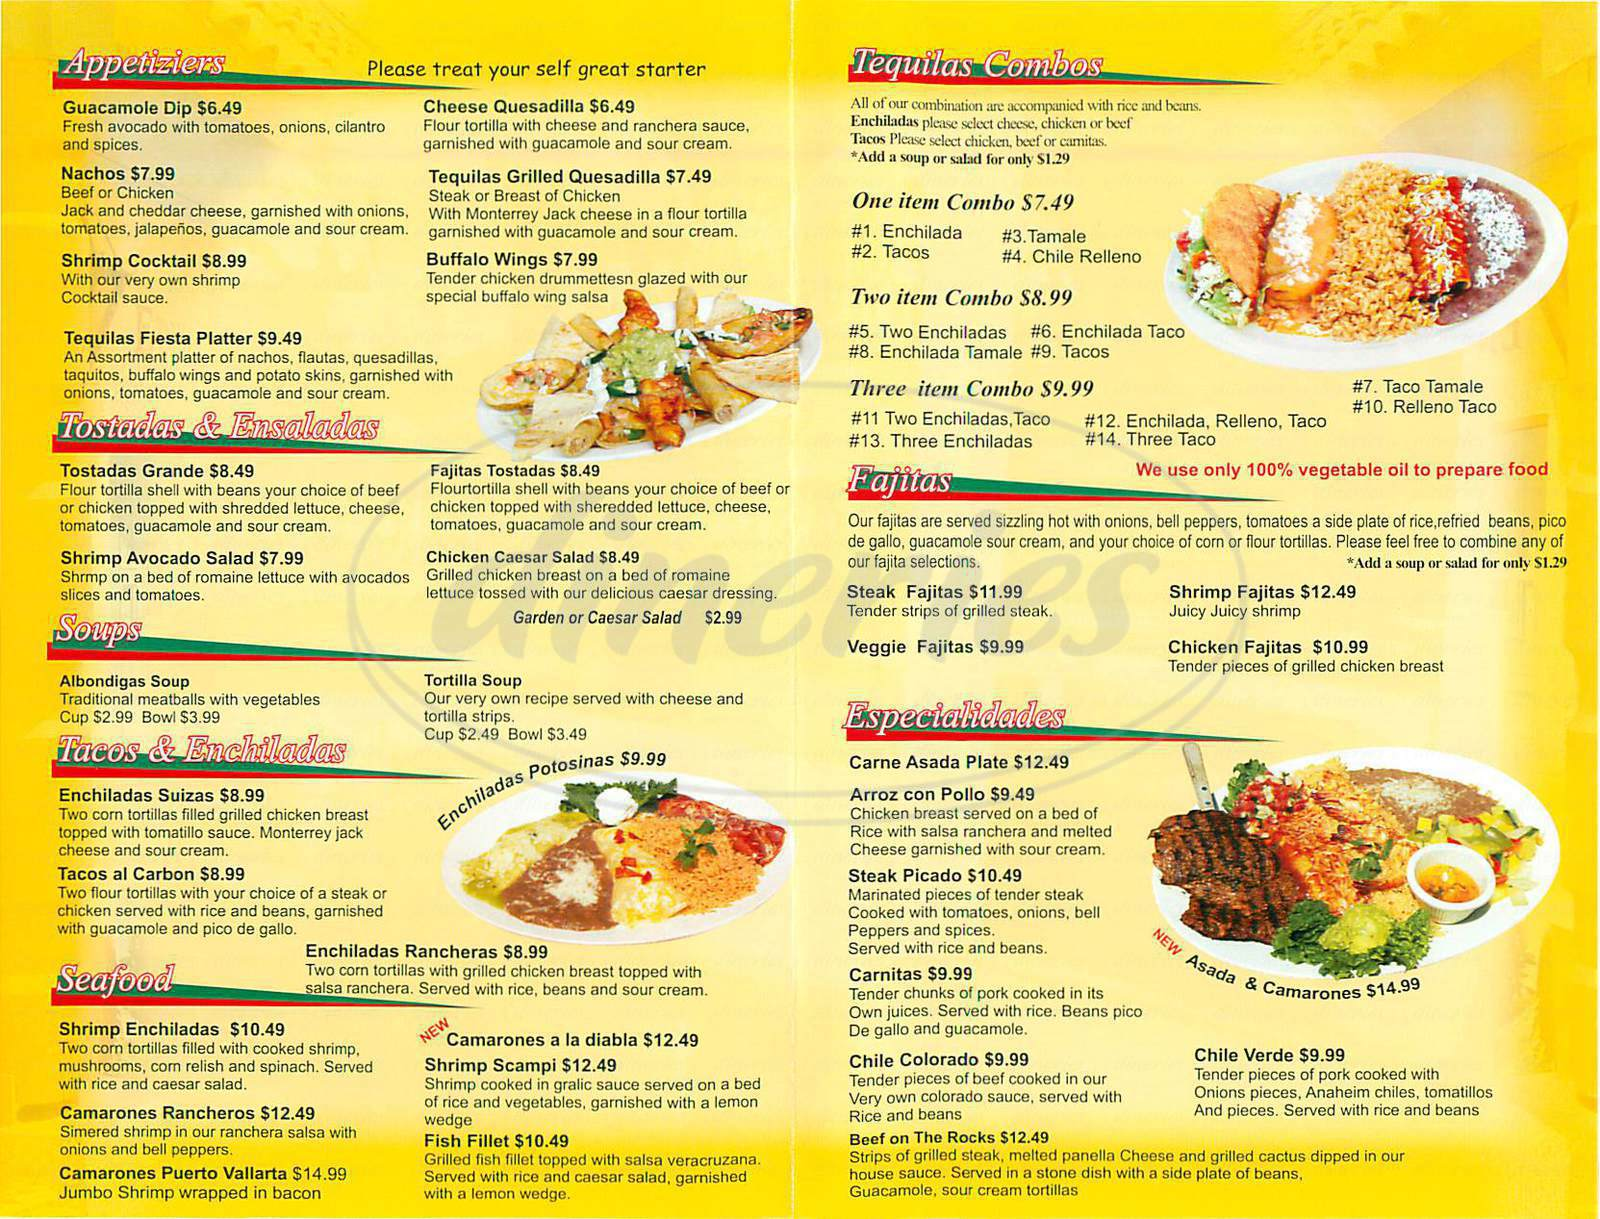 menu for Tequilas Restaurant